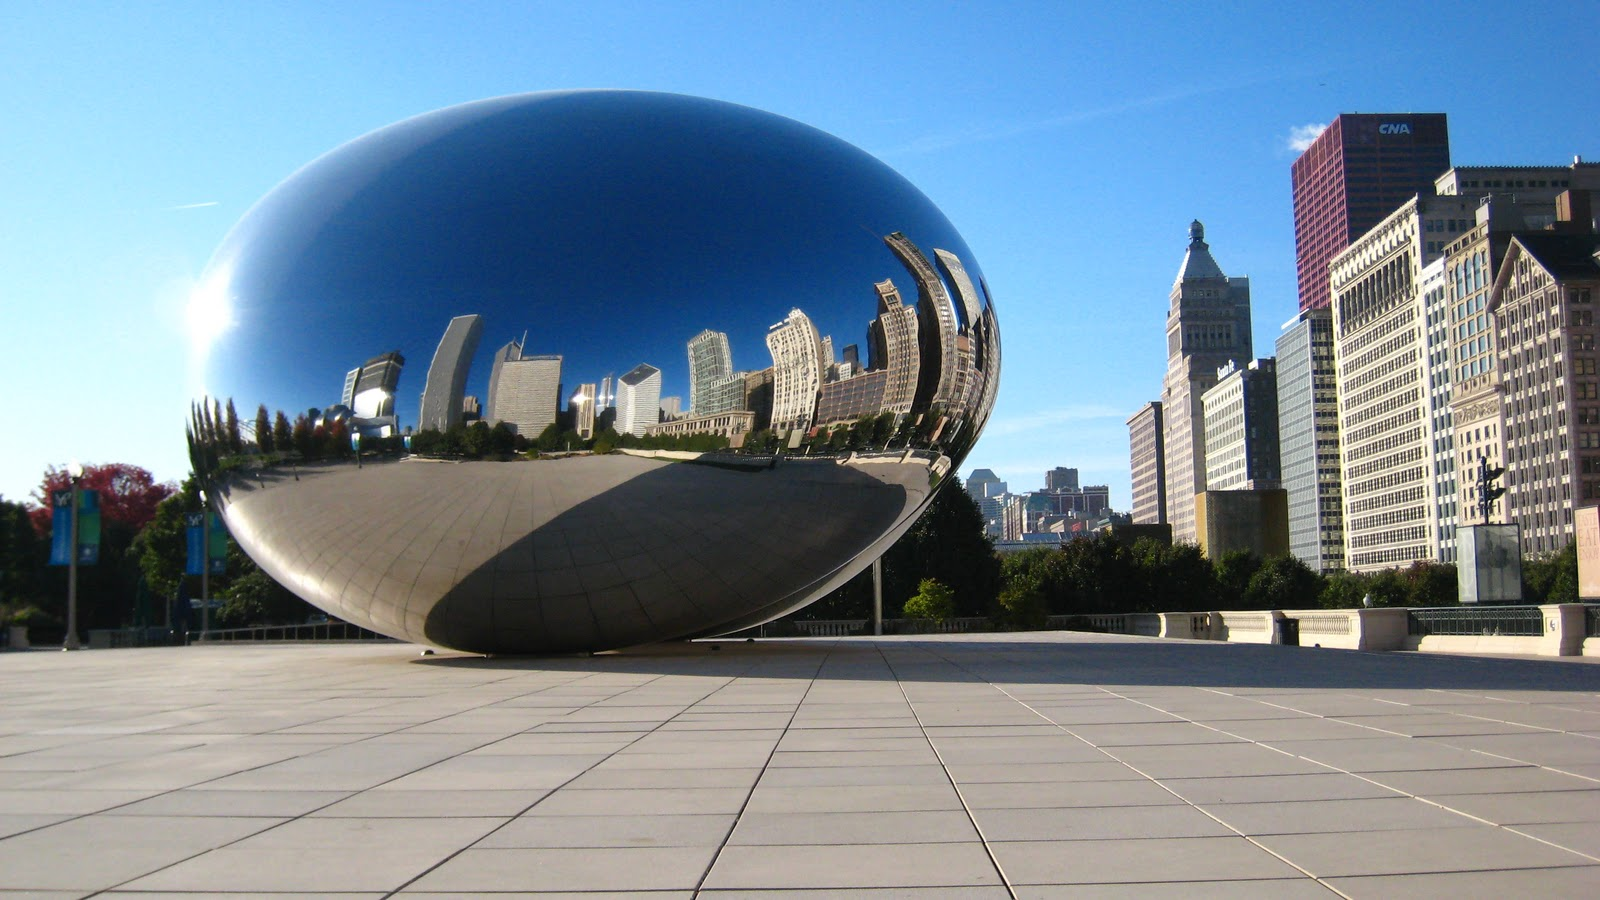 Anish Kapoor Cloud Gate image credit the Brooklyn NomadCloud Gate By Anish Kapoor